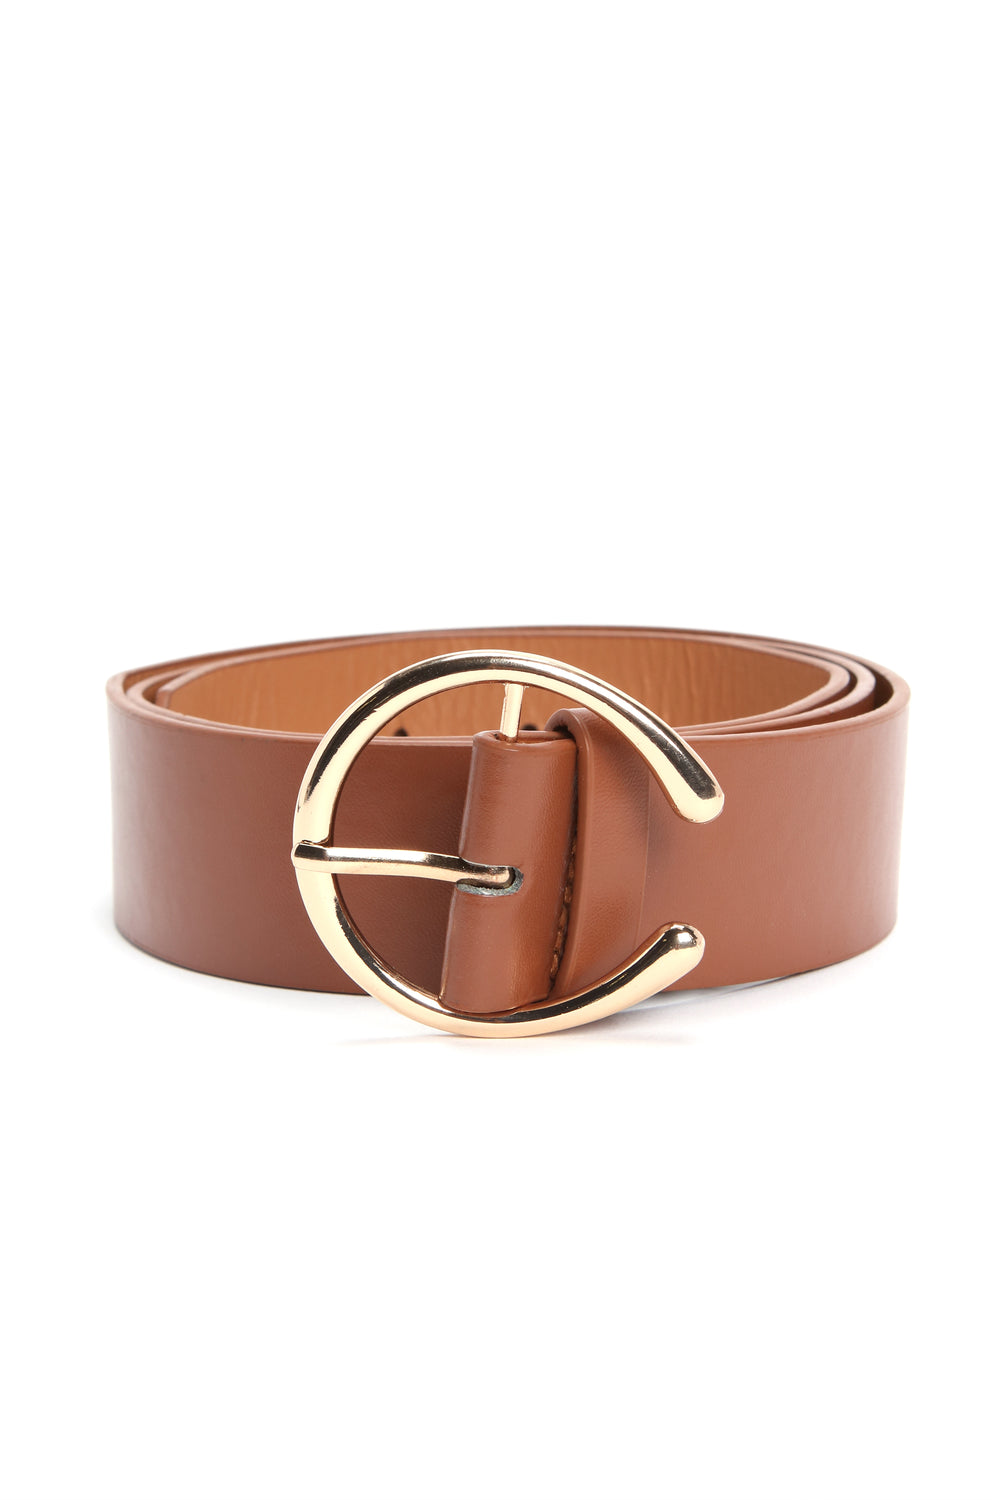 Cresent Moon Belt - Tan